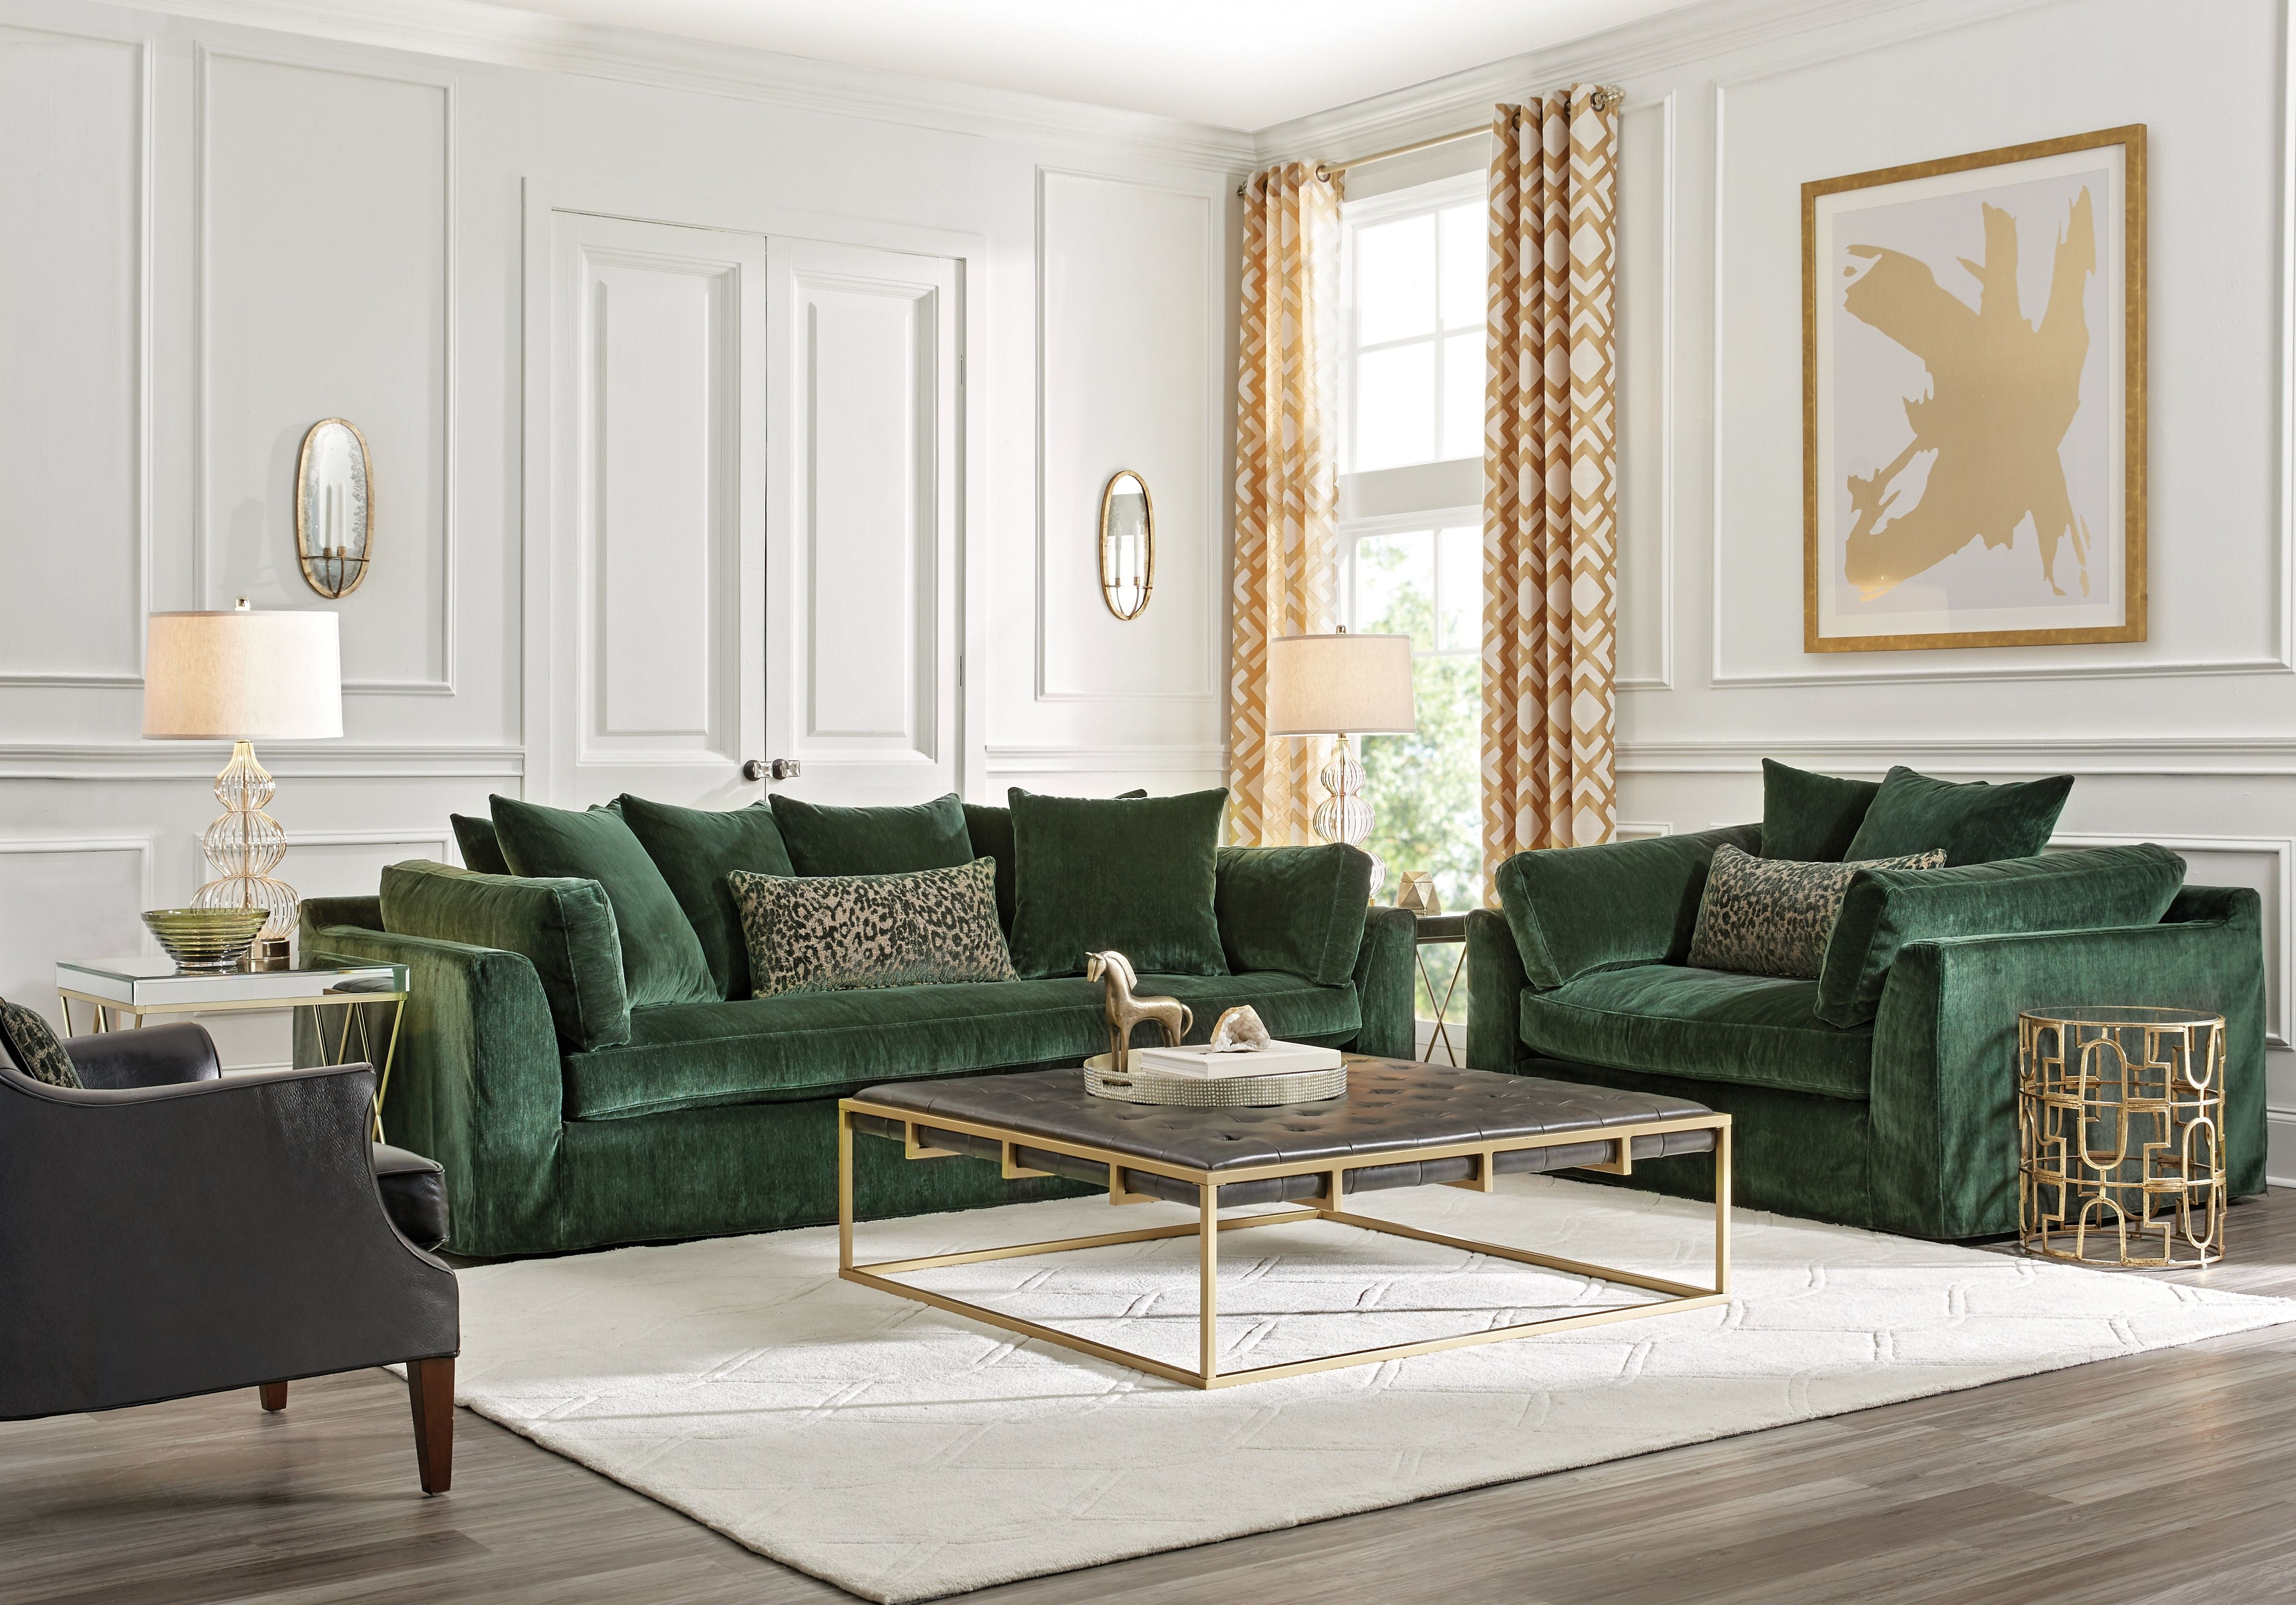 Raven Lane Green 3 Pc Living Room 2188 0 3pc Set Includes